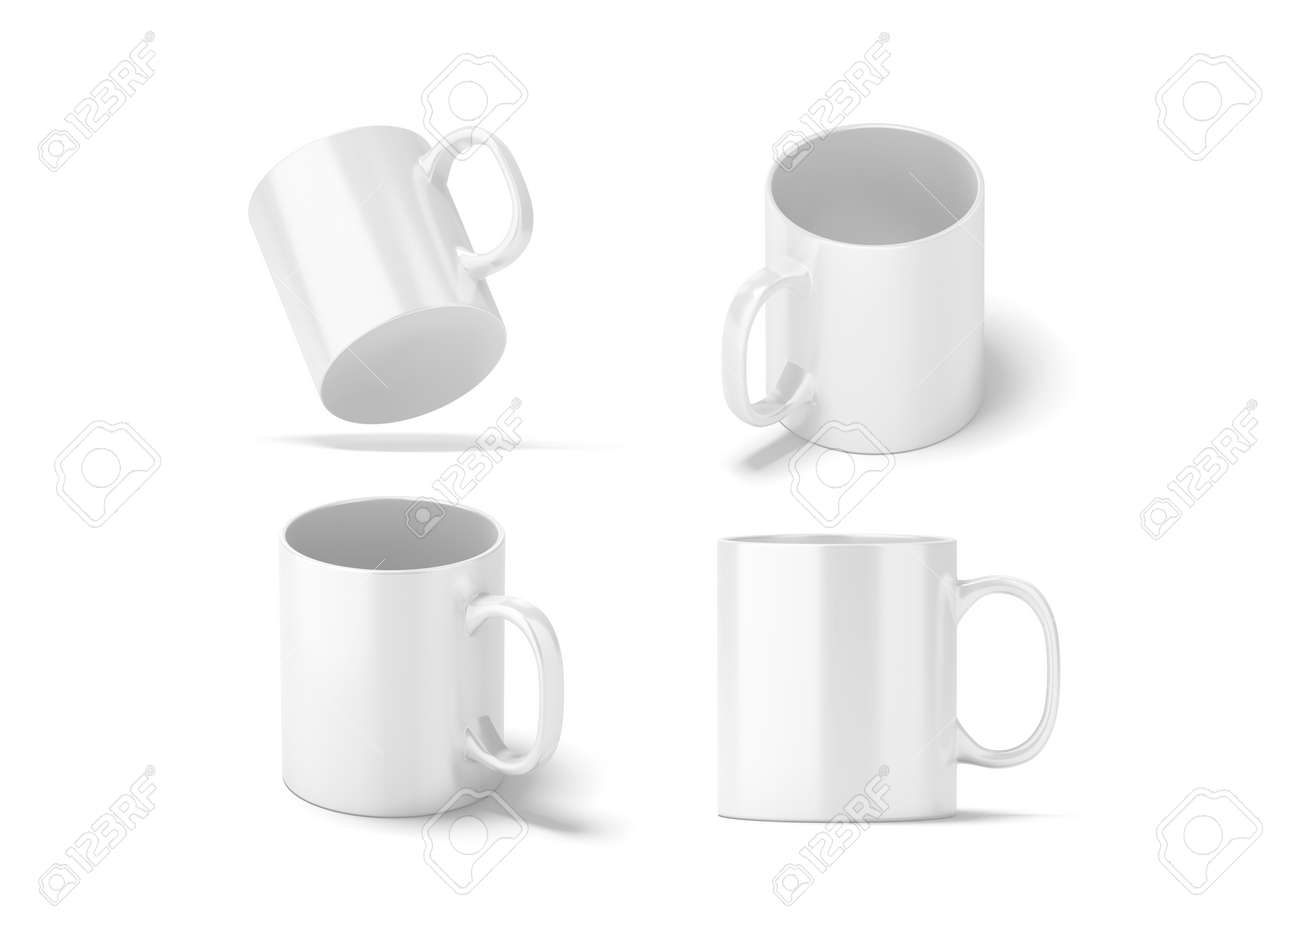 Blank White Glass Mug Mockups Set Isolated 3d Rendering Clear 11 Oz Coffee Cup Mock Up For Sublimation Printing Empty Gift Pint Set Branding Template Glassy Restaurant Tankard Design Banco De Imagens